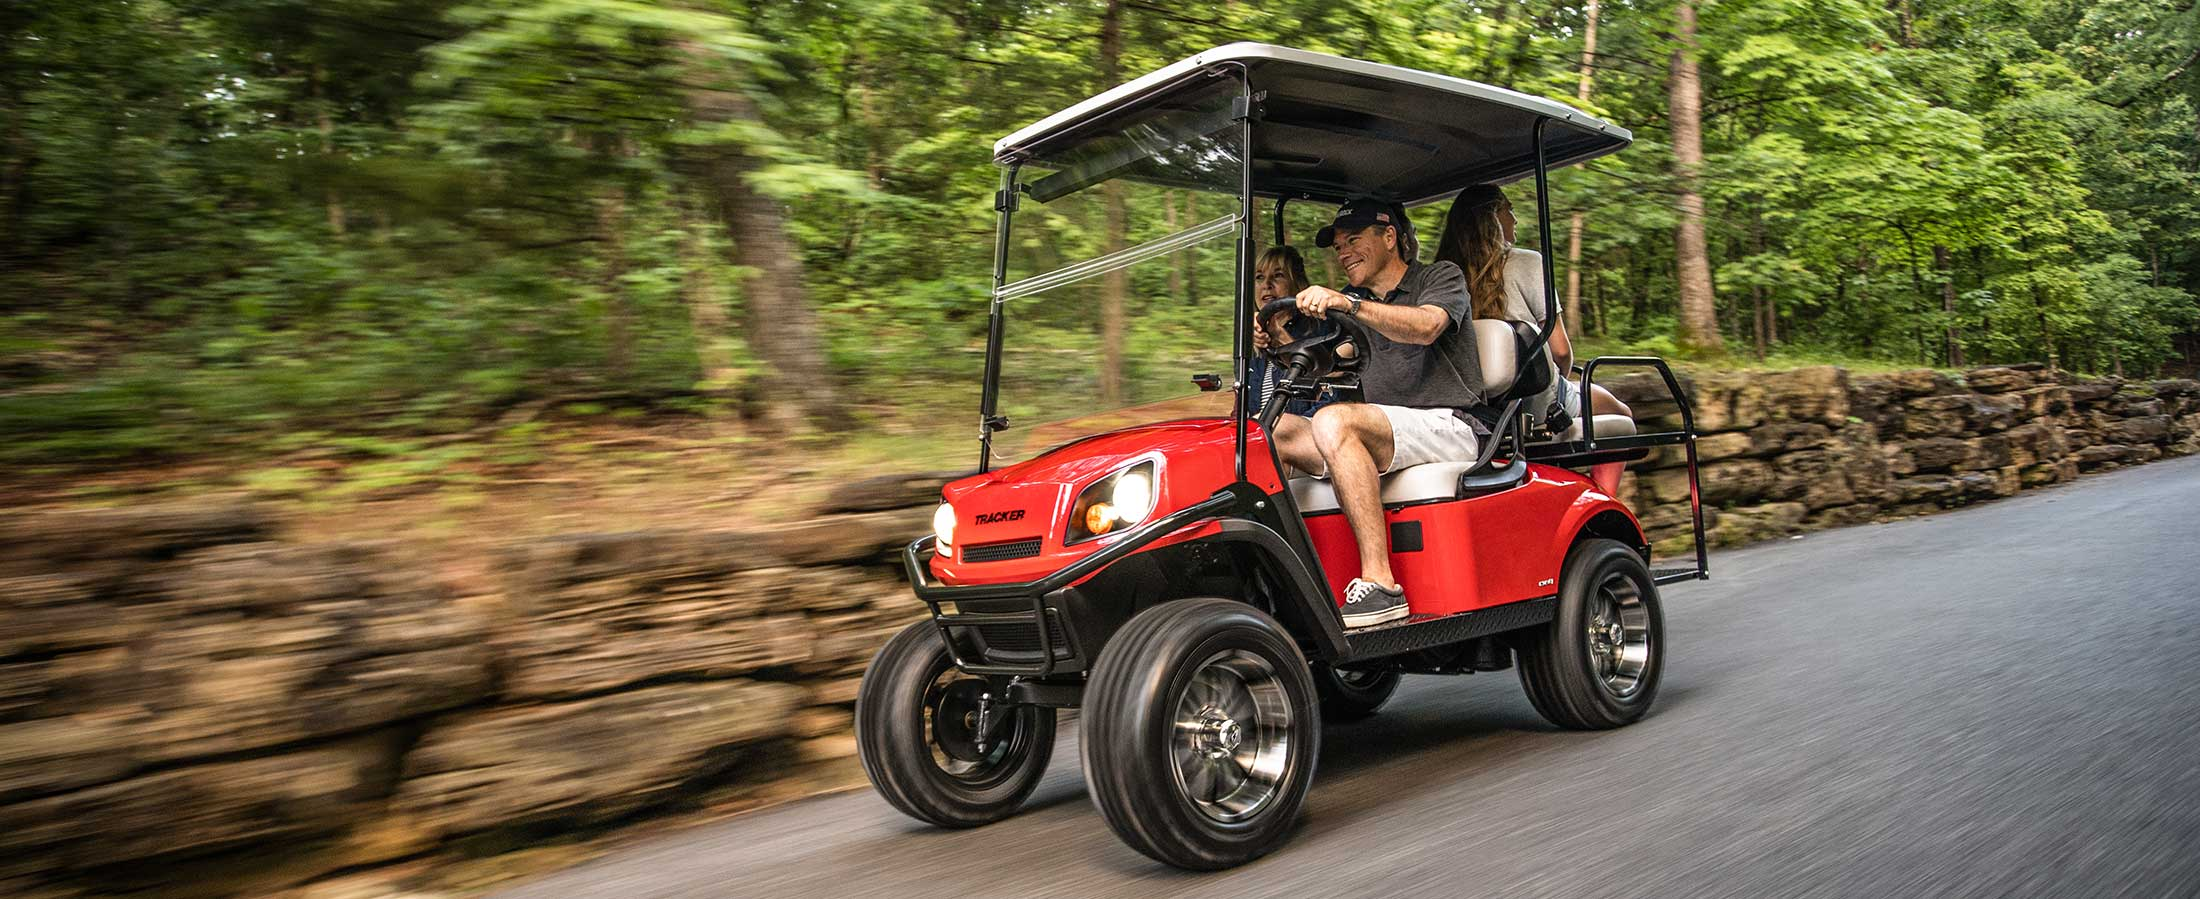 Family rides in a red LX4 personal Sport Cart beside a rock wall